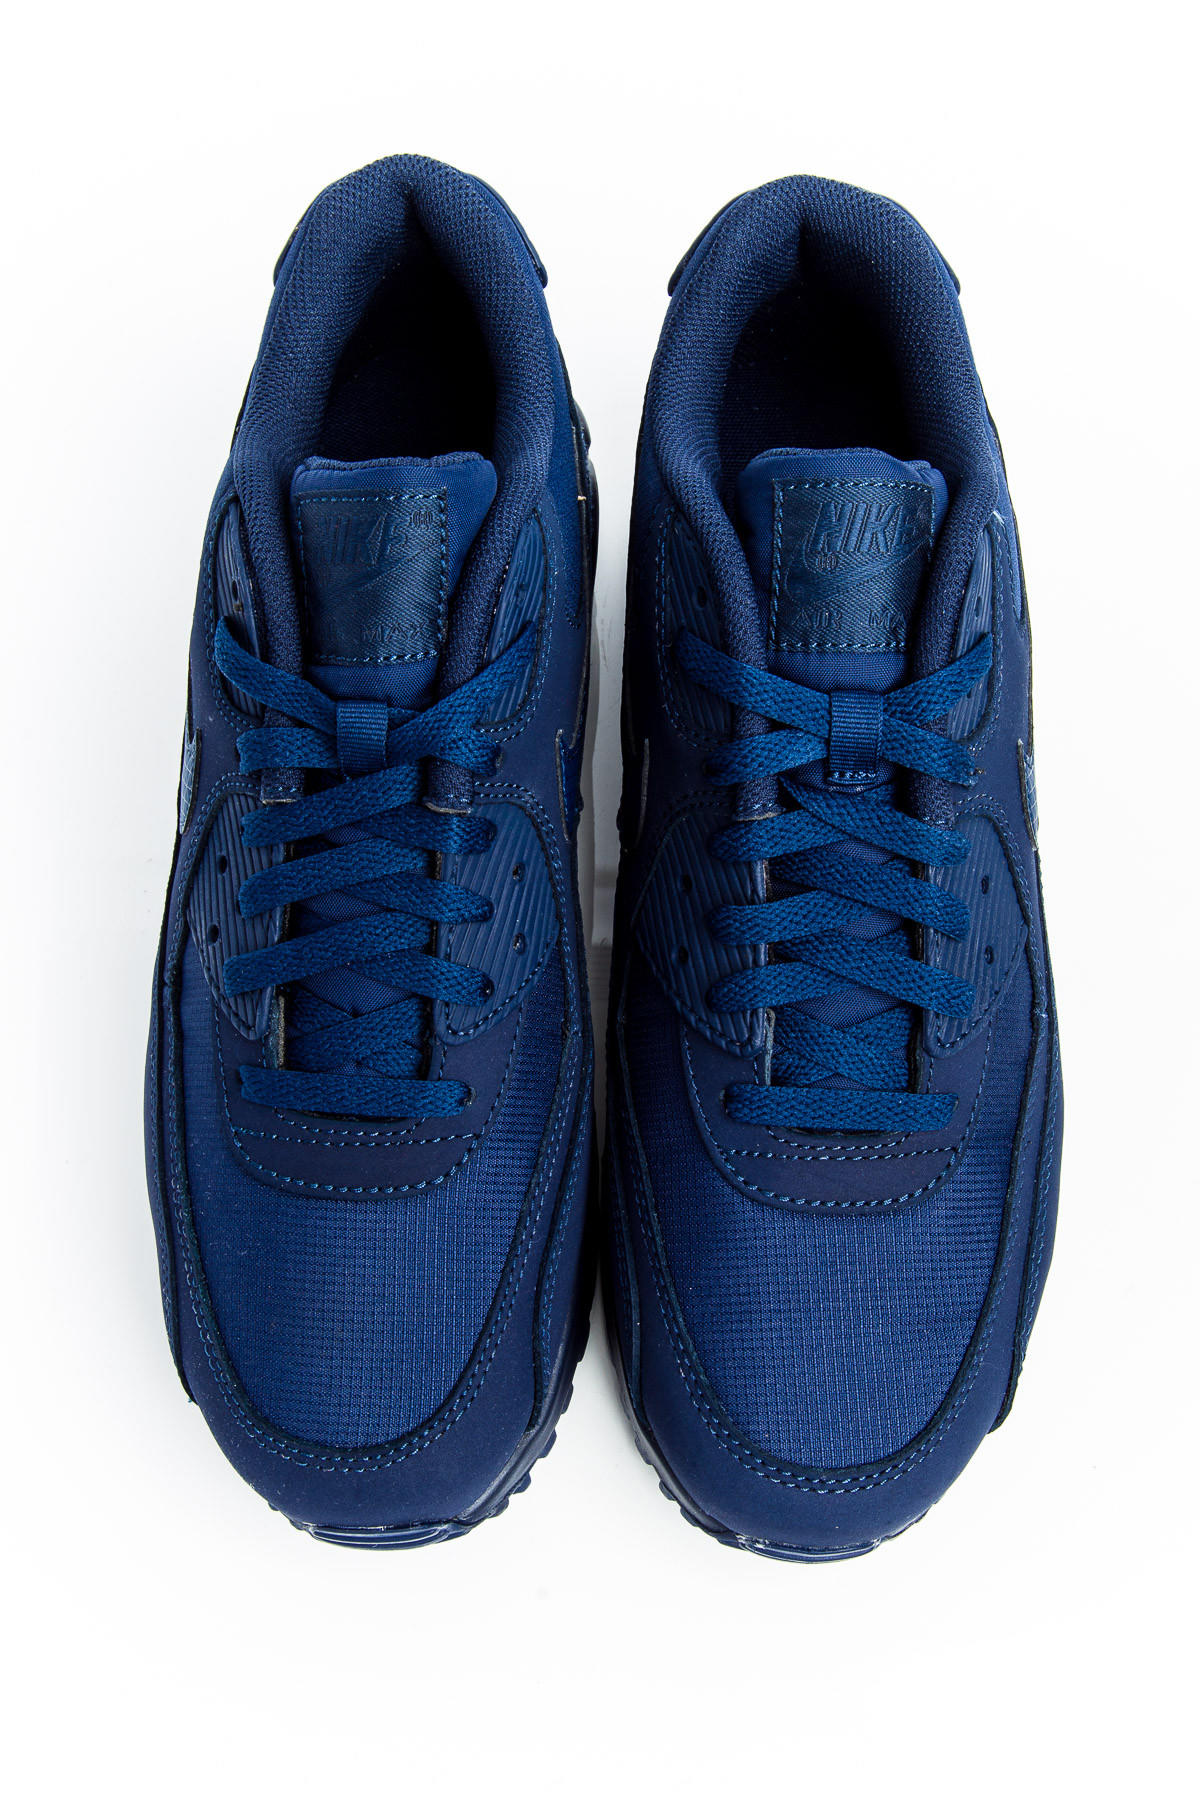 Nike Air Max 90 Essentail Midnight Navy from Probus  c73476ce1b3c